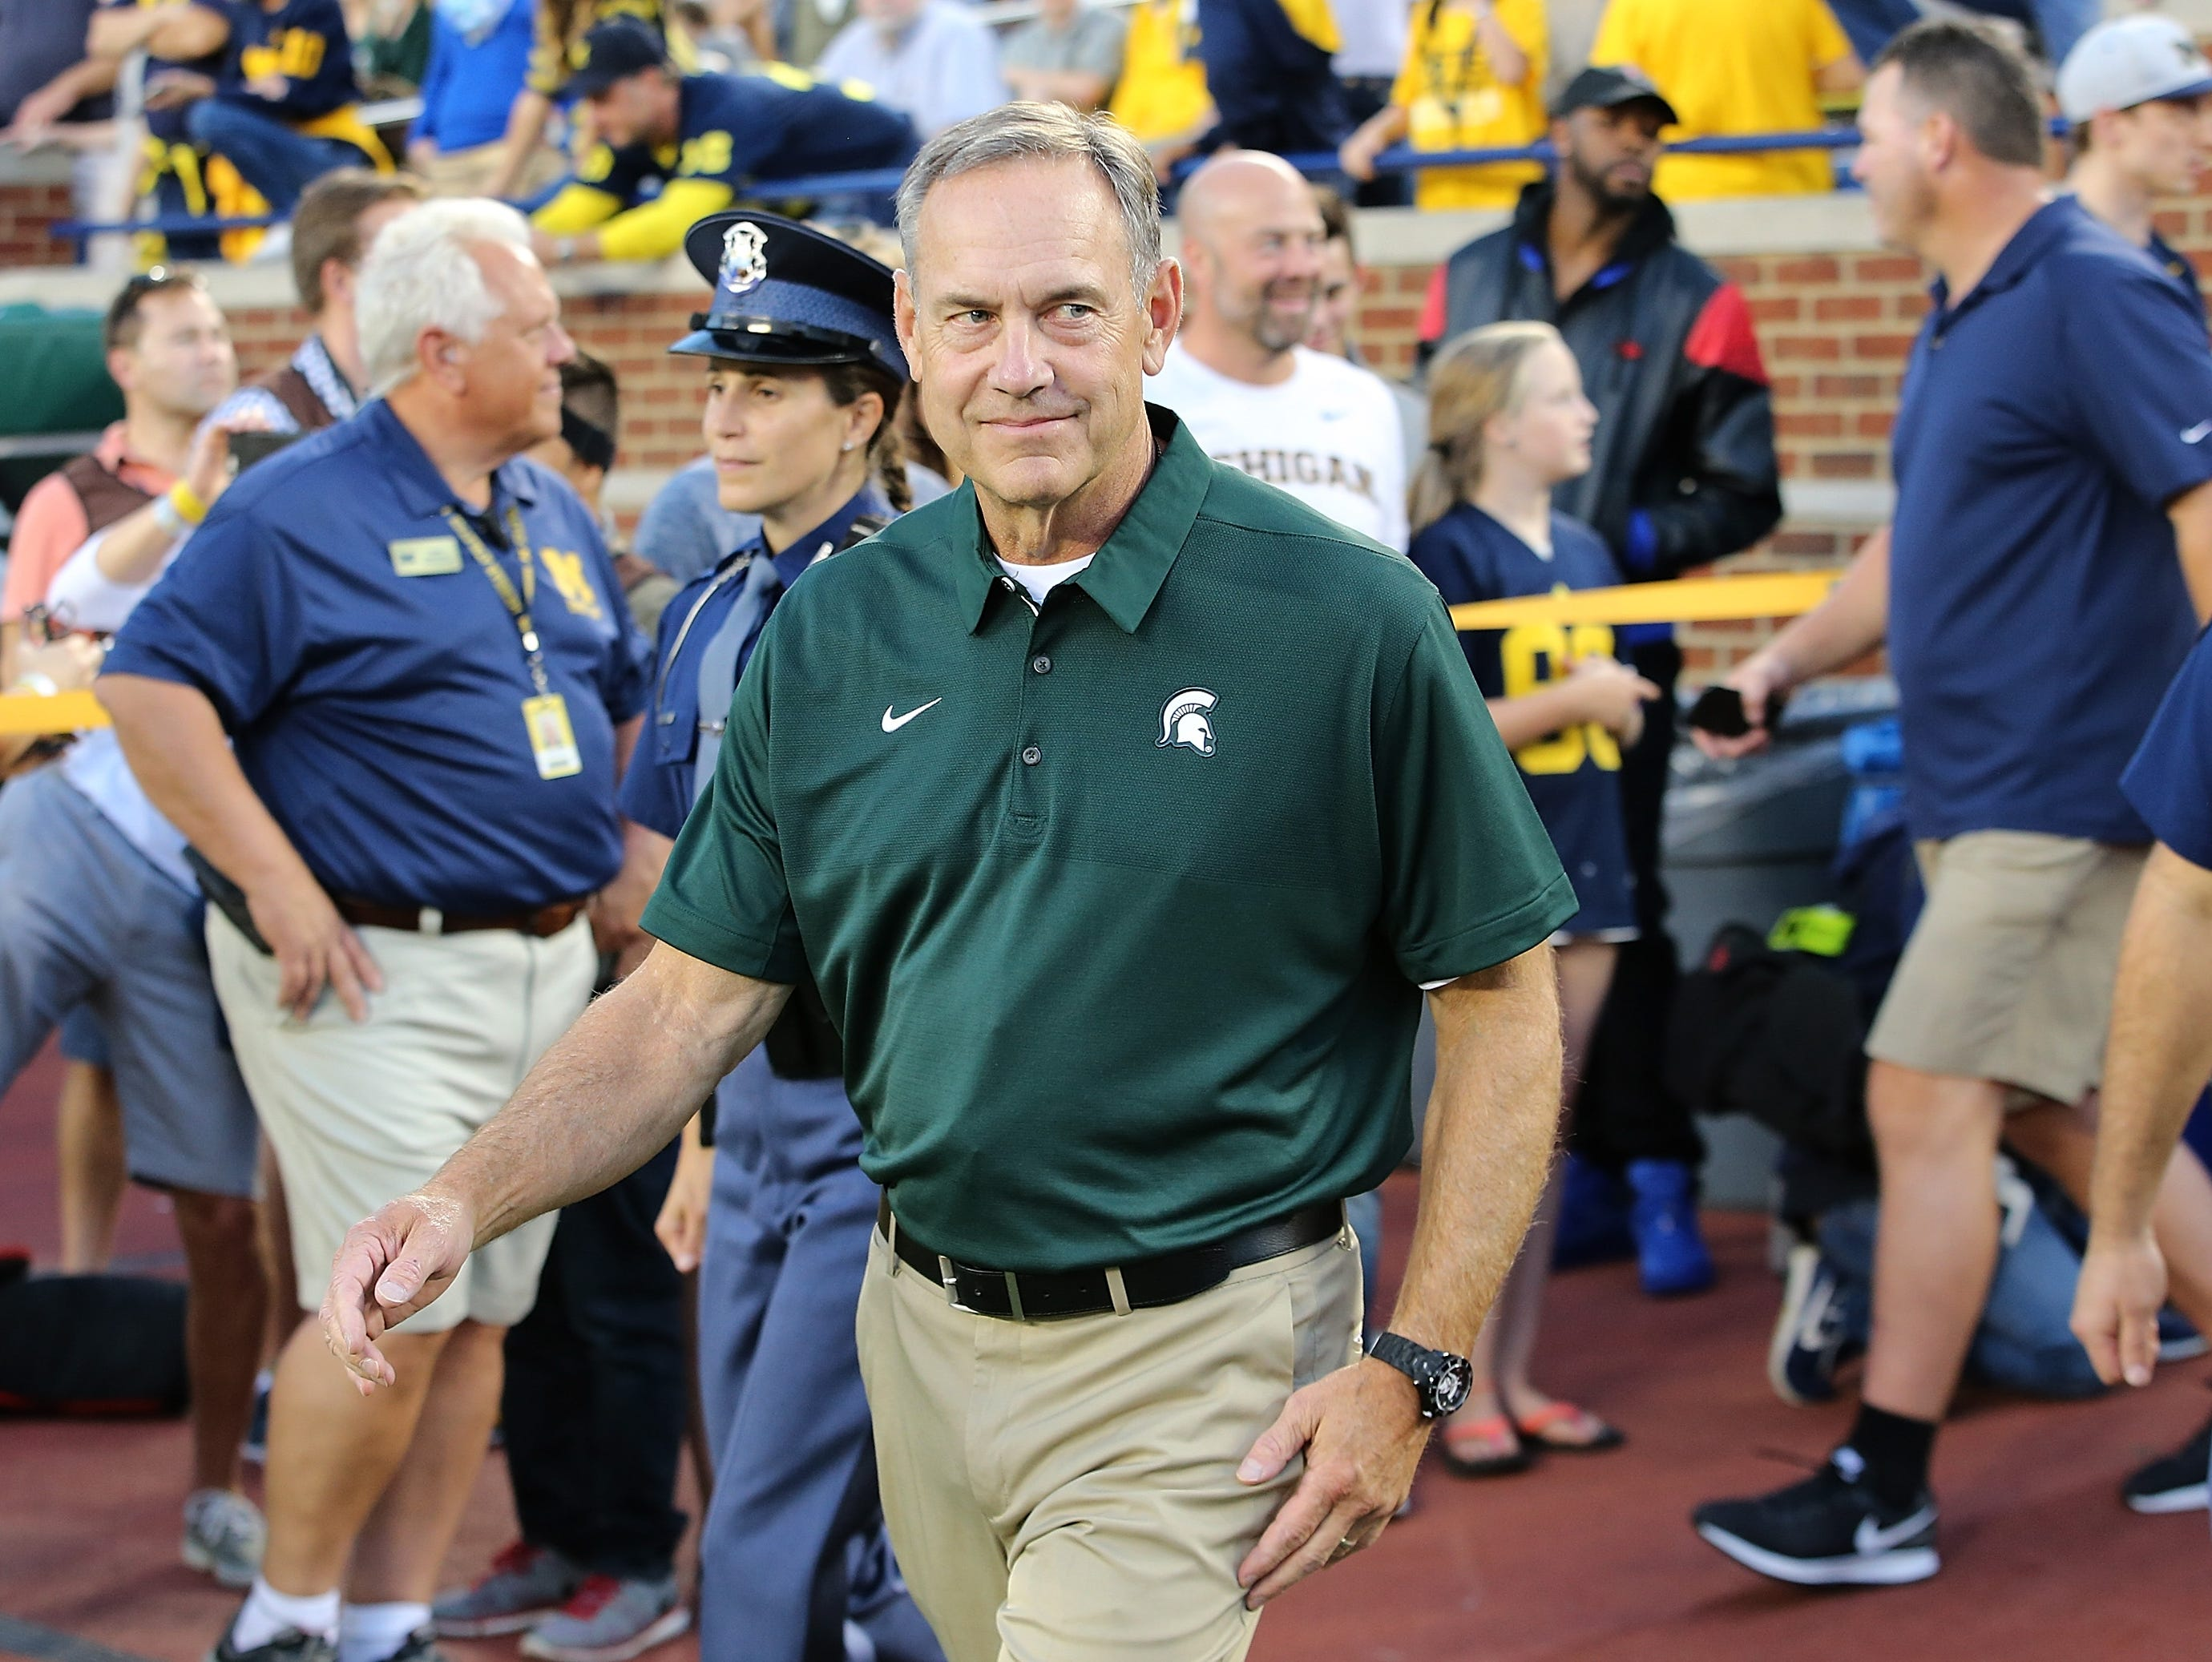 On Saturday, Mark Dantonio picked up his 10th victory over a top-10 opponent during his Michigan State tenure. Here's a look back at all 10.